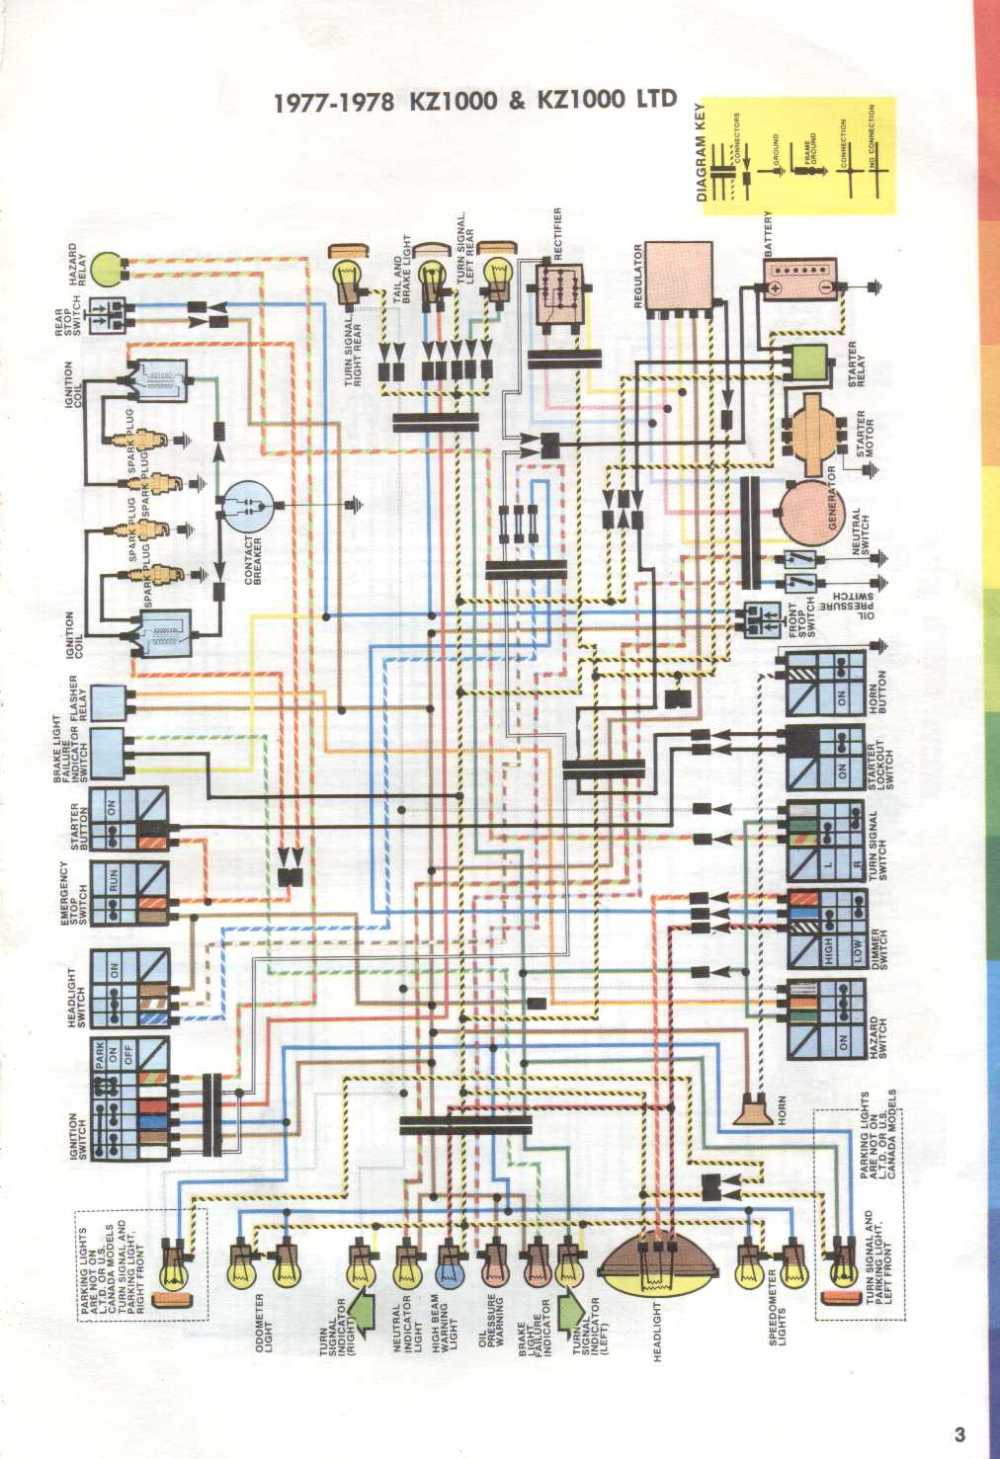 medium resolution of wiring diagram for 1977 1978 kawasaki kz1000 and kz1000ltd evan kawasaki wiring schematics